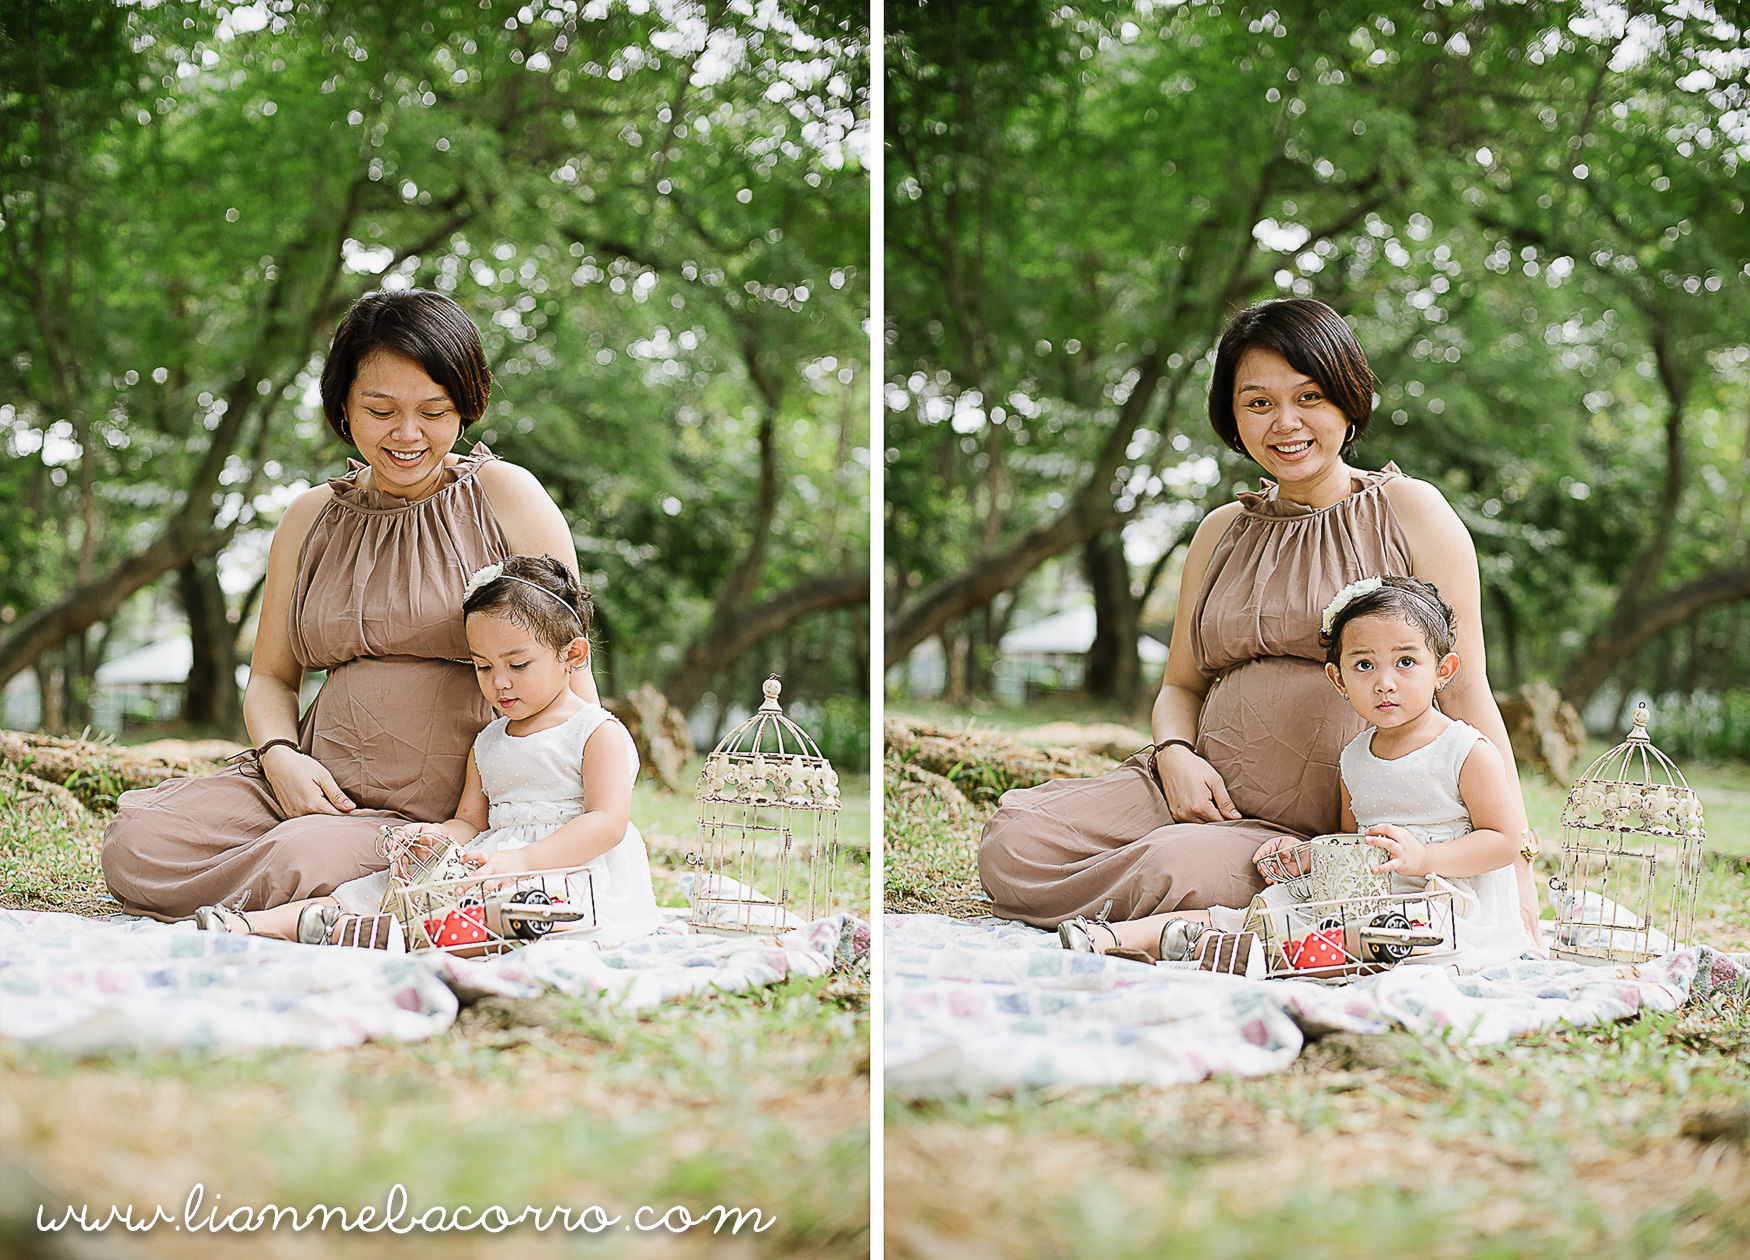 Lifestyle Maternity Family Photography by Lianne Bacorro-4